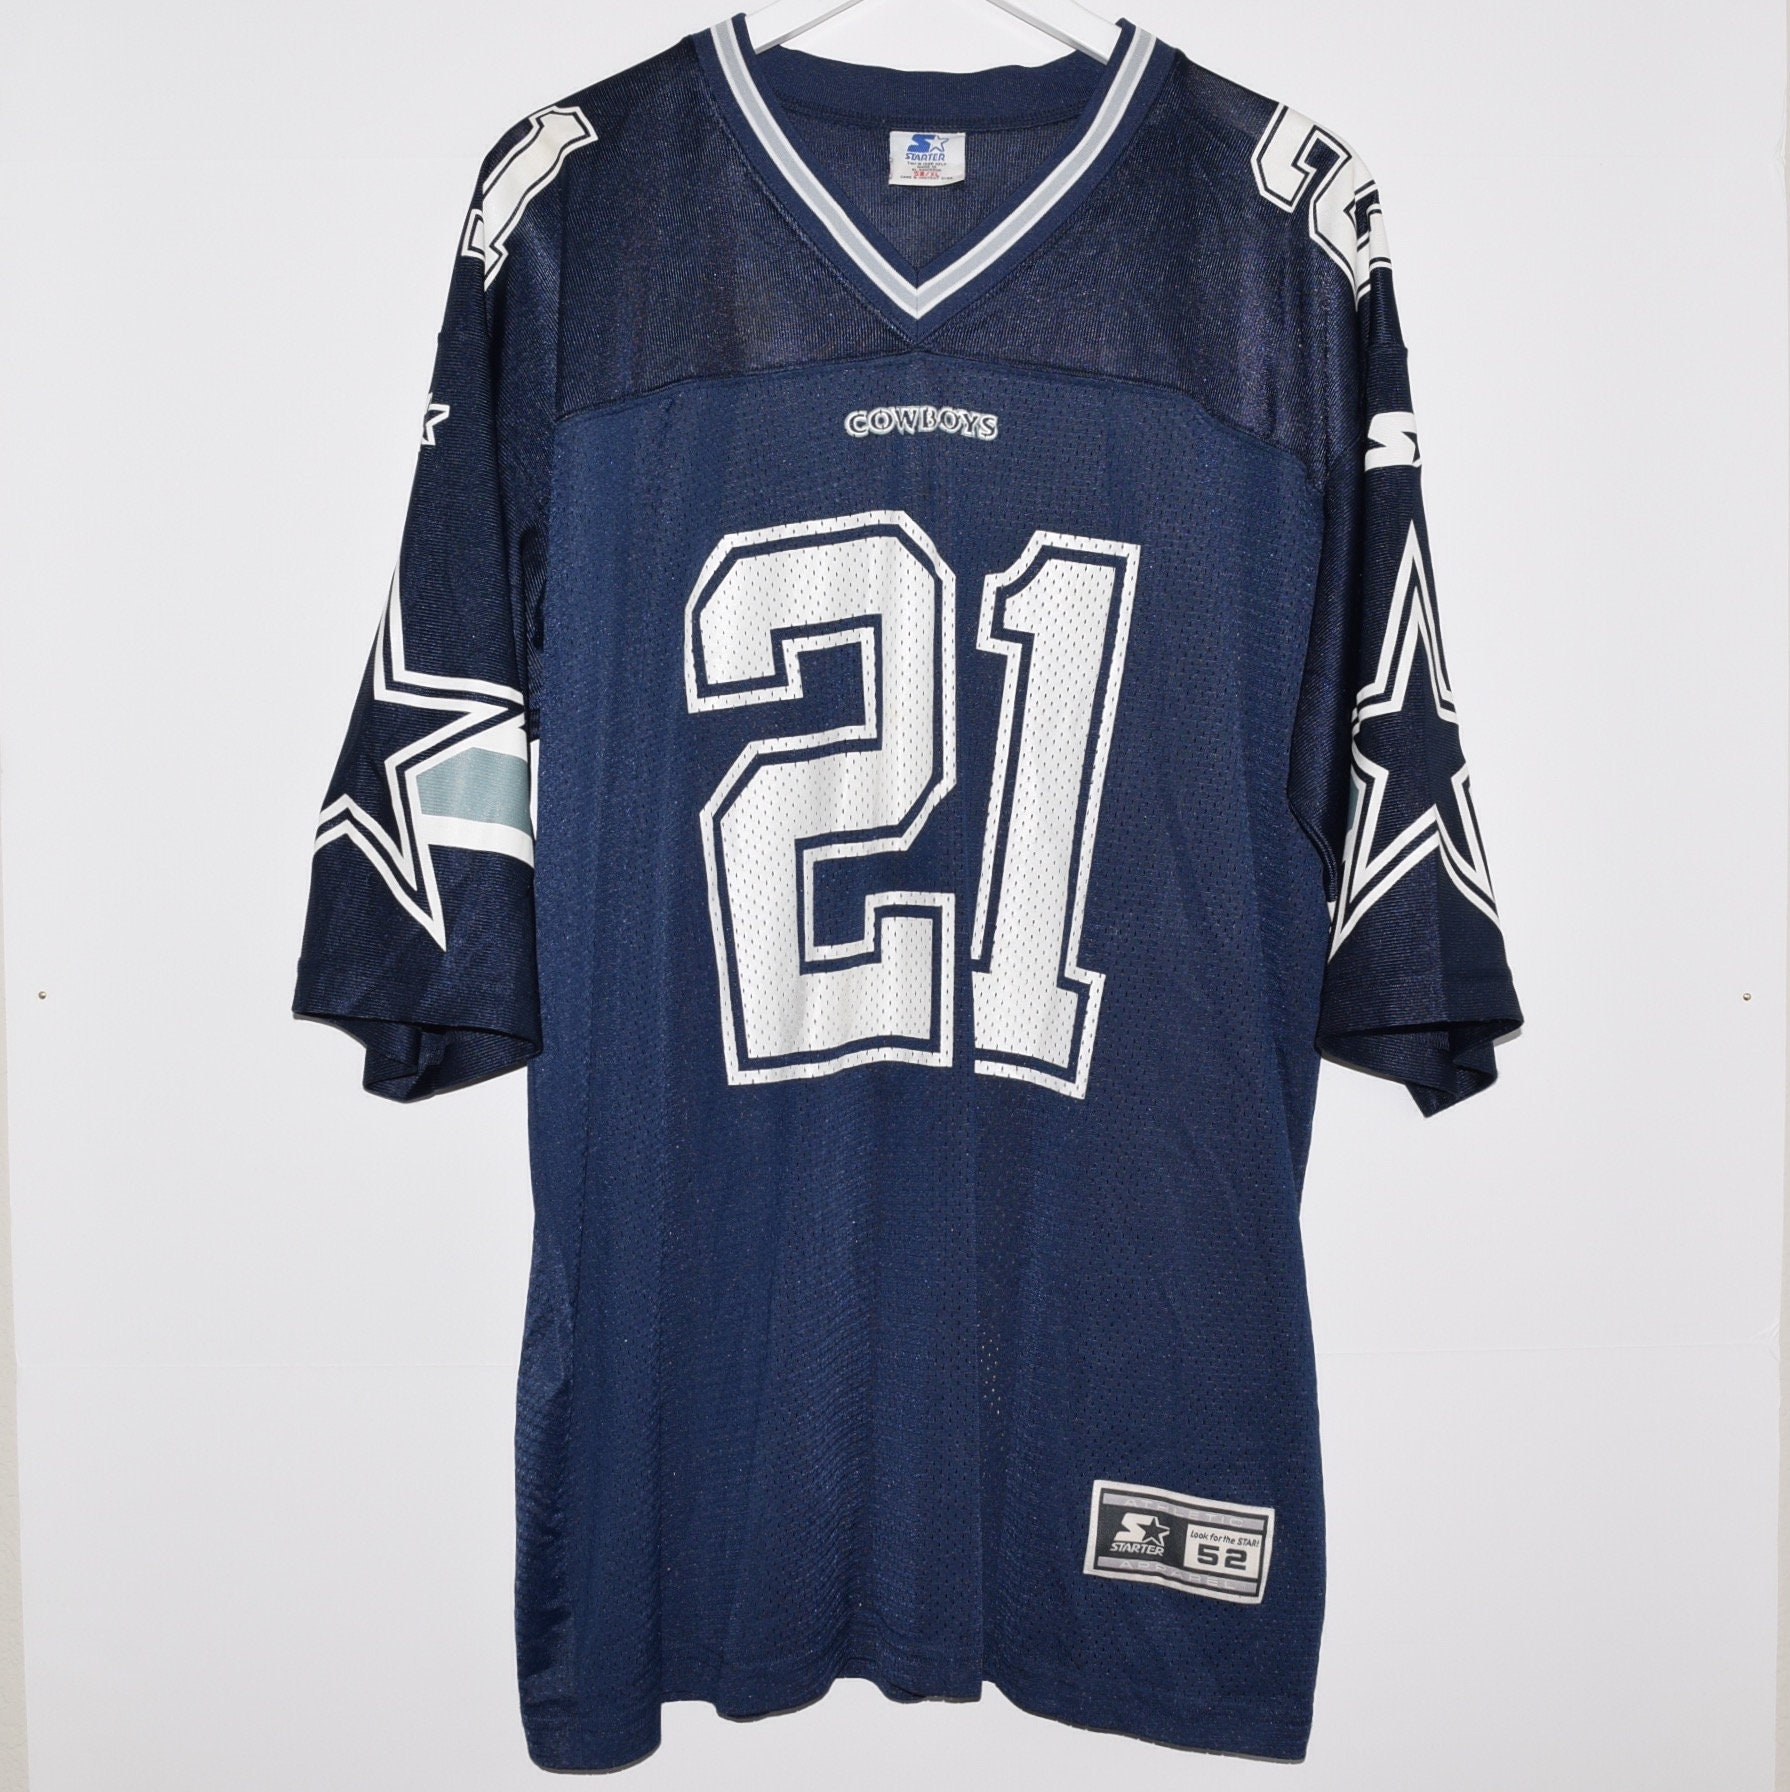 premium selection 4430f 25202 NEW Vintage 1995 Deion Sanders 21 Dallas Cowboys Starter Football Jersey 52  XL